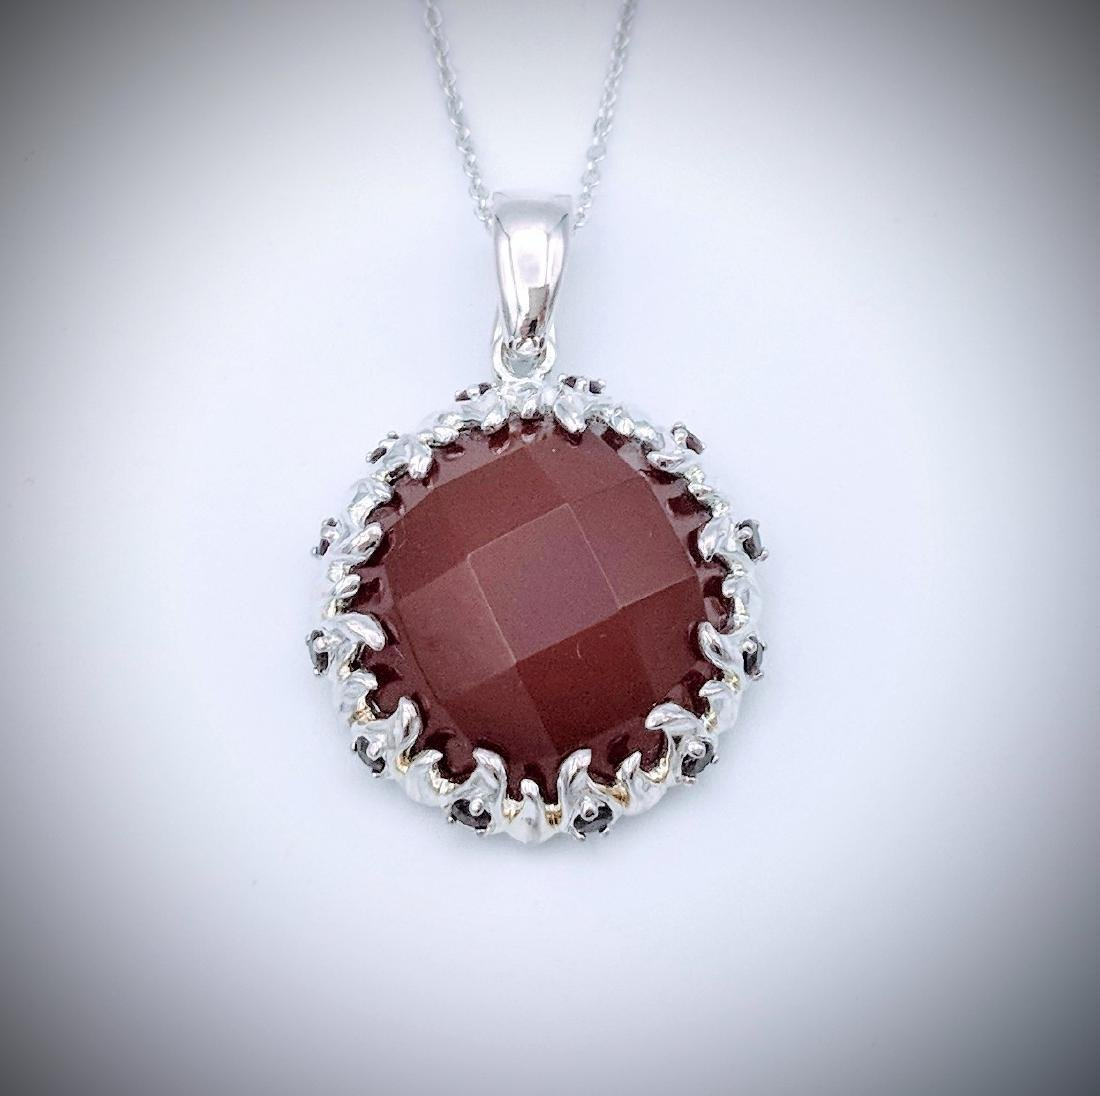 Sterling Silver Necklace and Pendant with Carnelian,